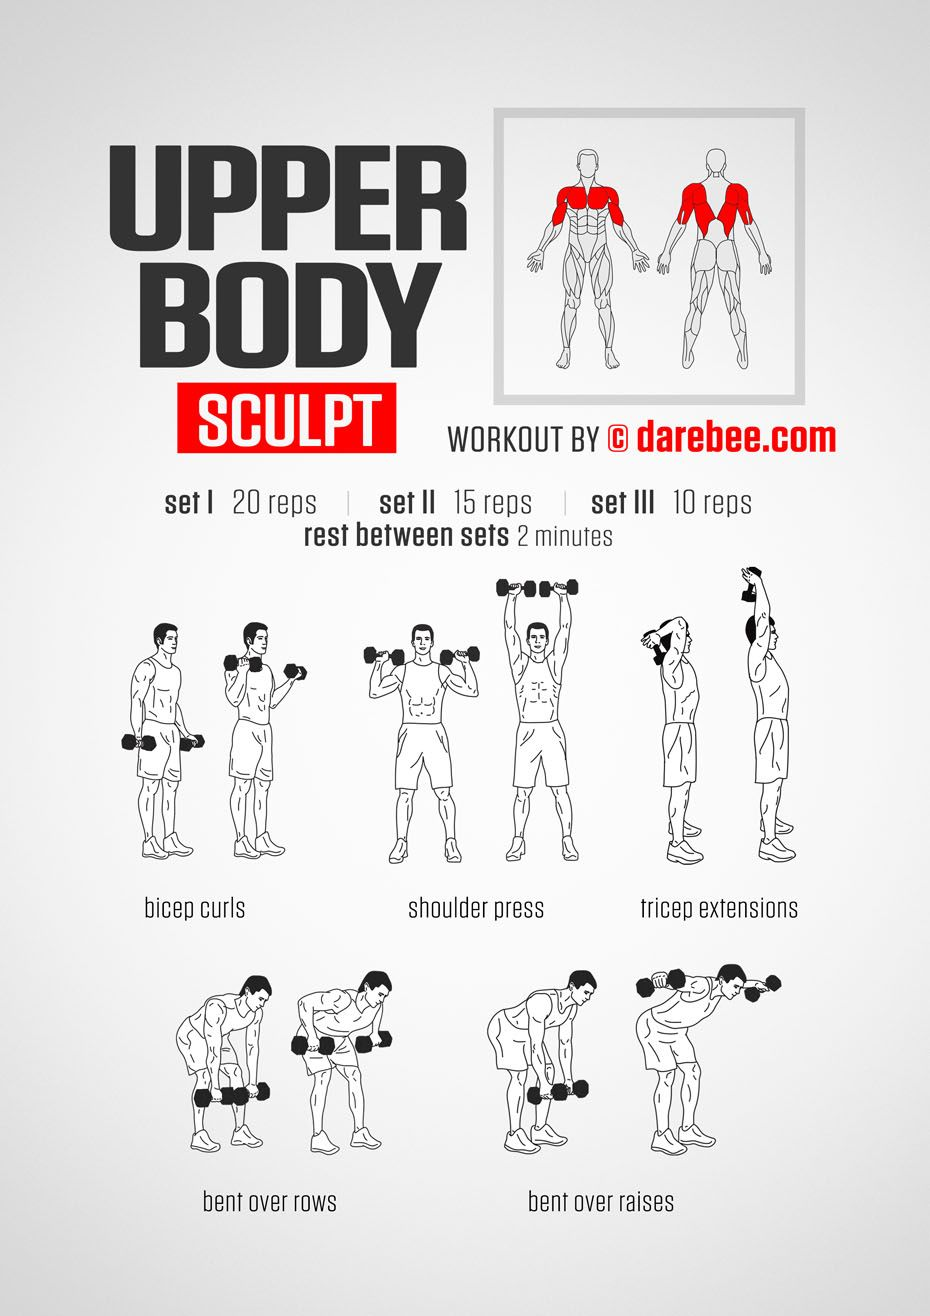 Another killer arm workout from darebee